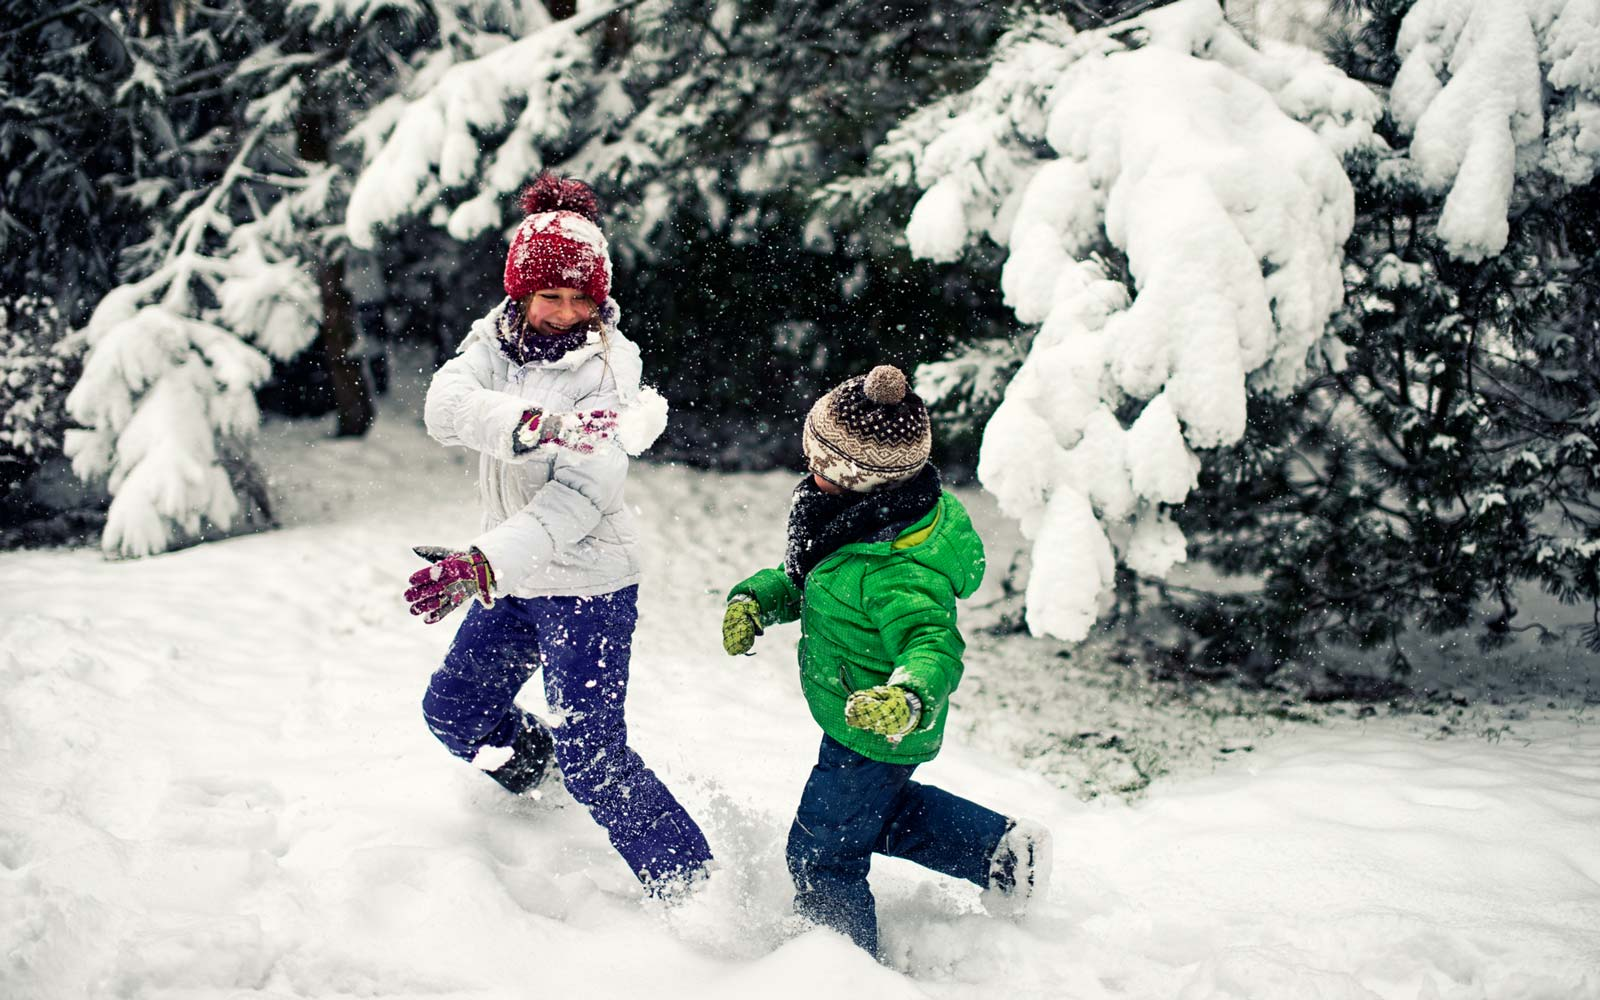 This Town's 98-year Snowball Fight Ban Was Just Overturned — by a 9-year-old Boy